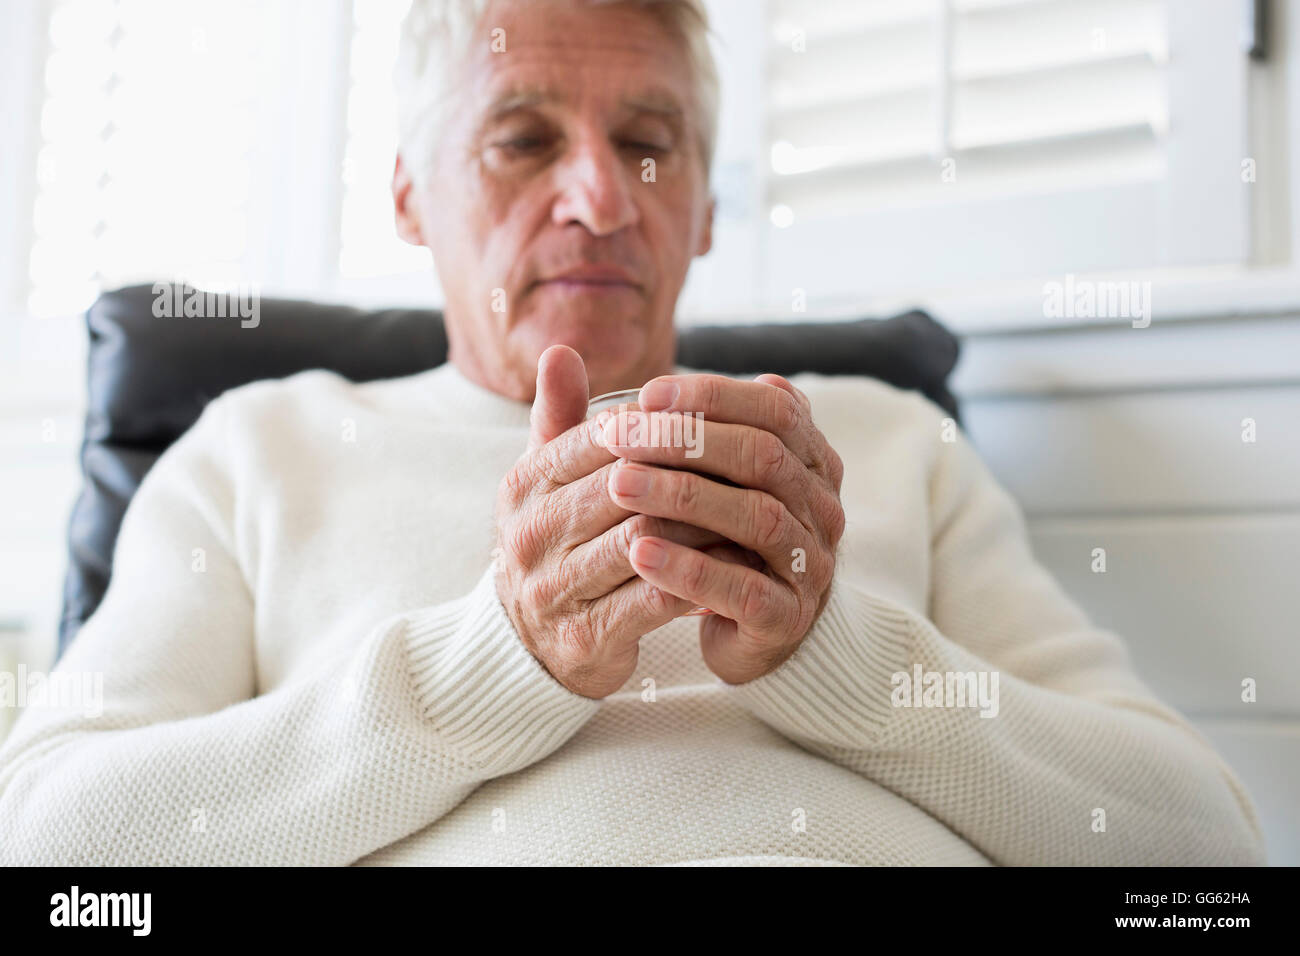 Senior man holding a cup of tea Photo Stock